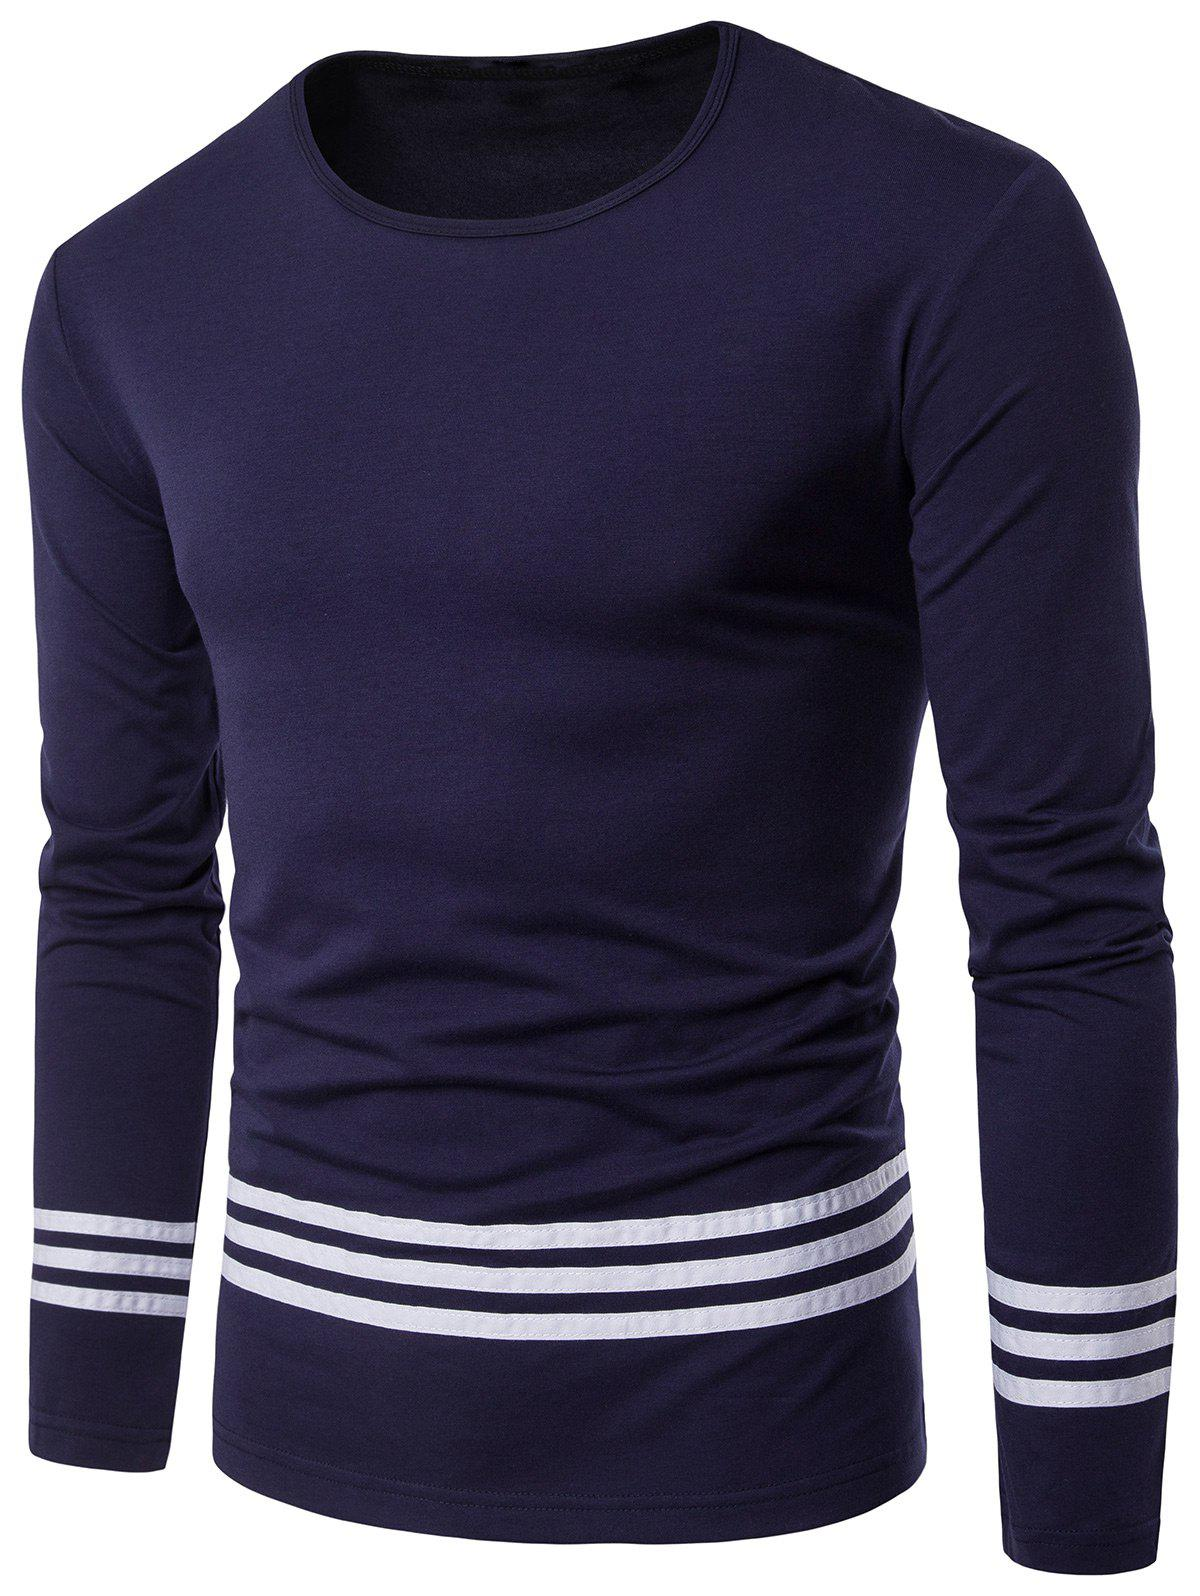 Design t shirt long sleeve - Crew Neck Long Sleeve Striped Design T Shirt Cadetblue M